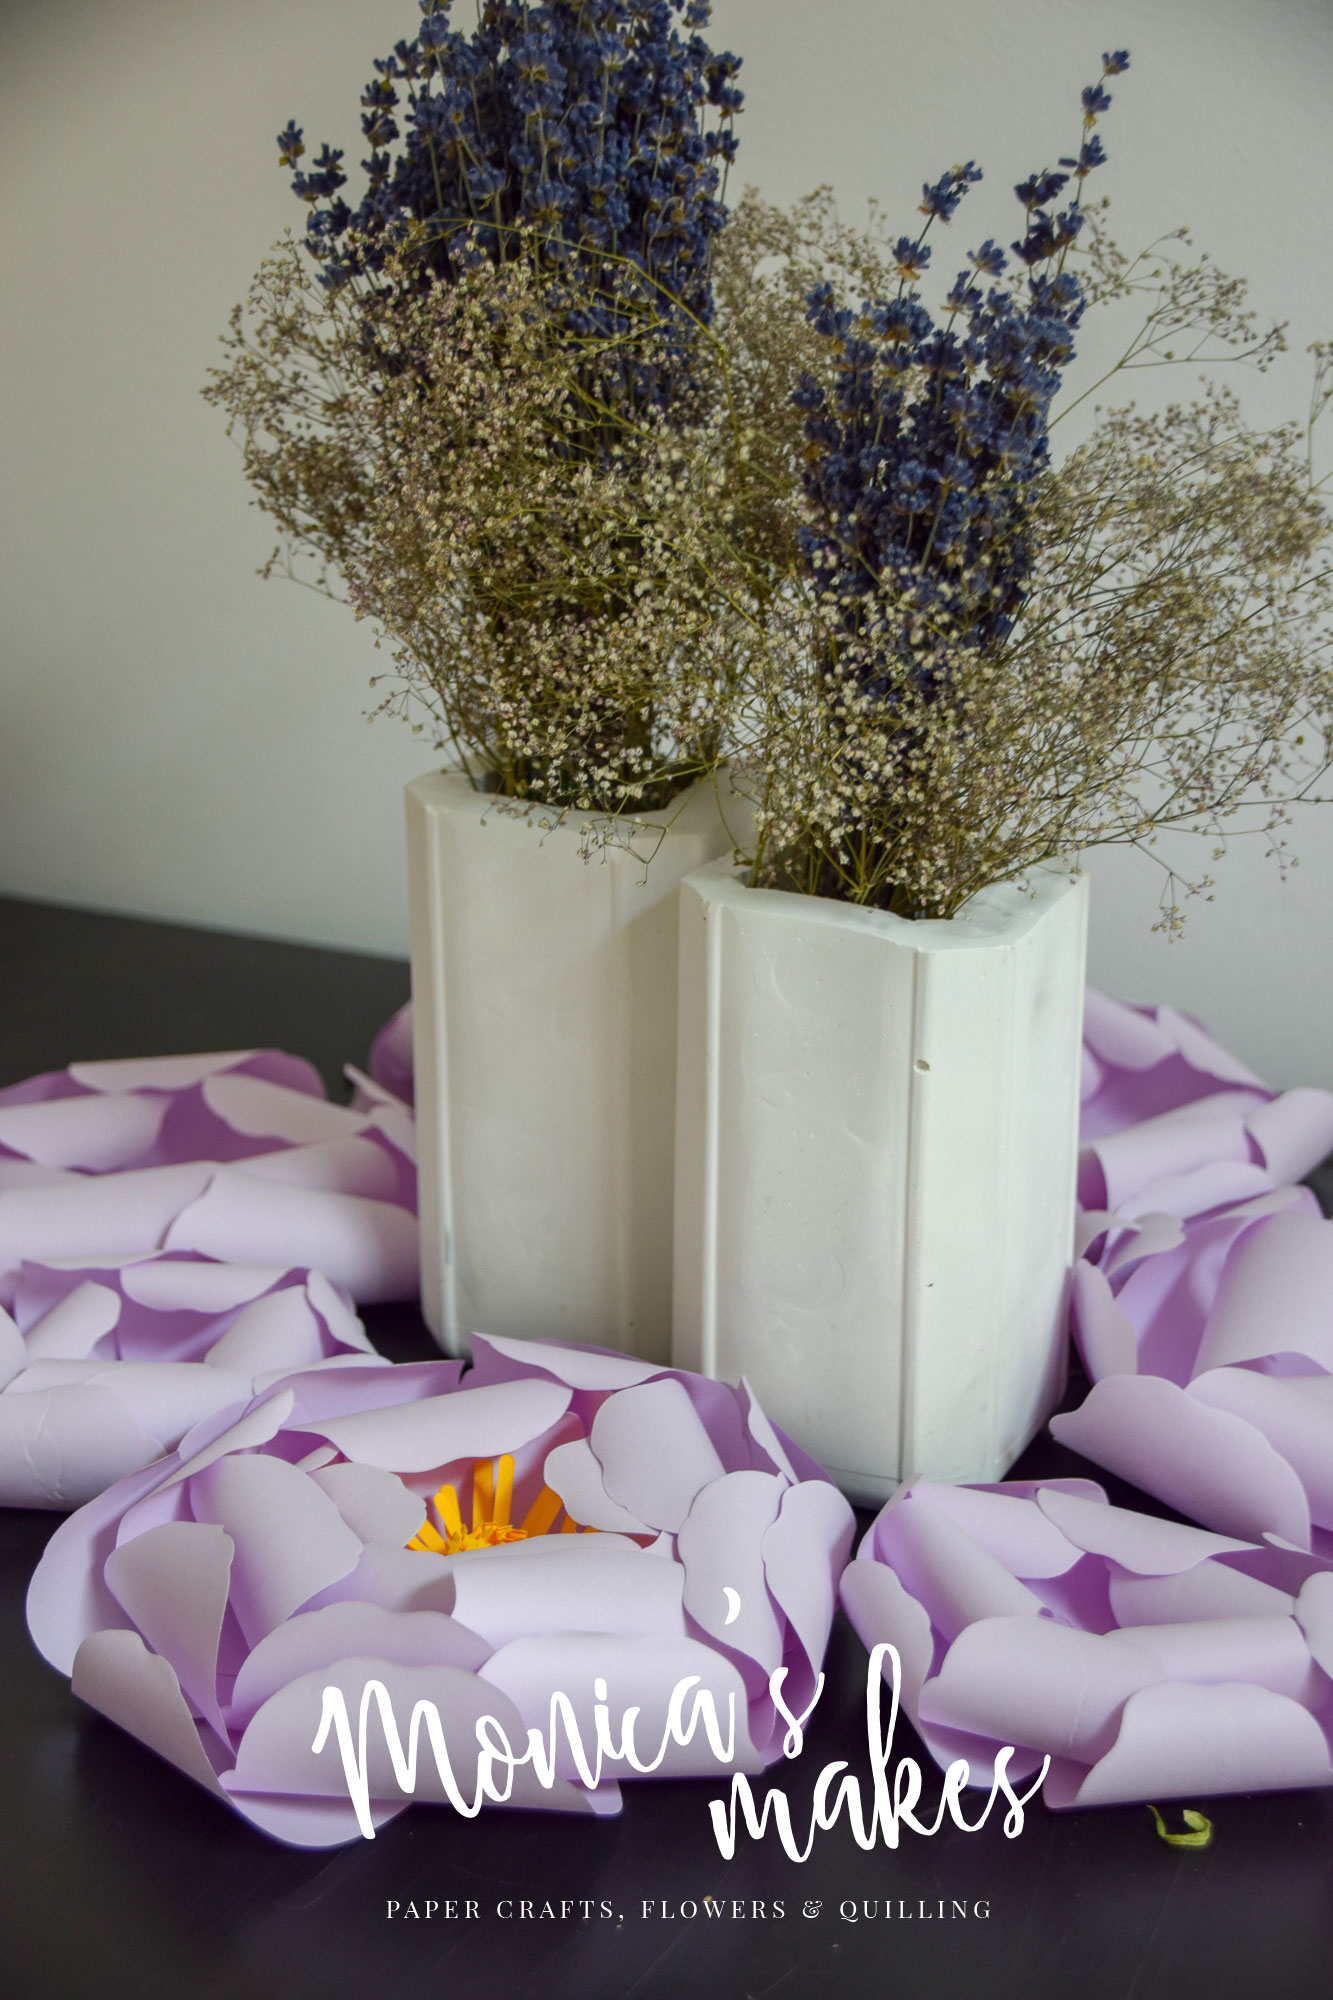 DIY Cement Flower Vases - Beautiful and Easy to Craft - www.monicabadiu.com